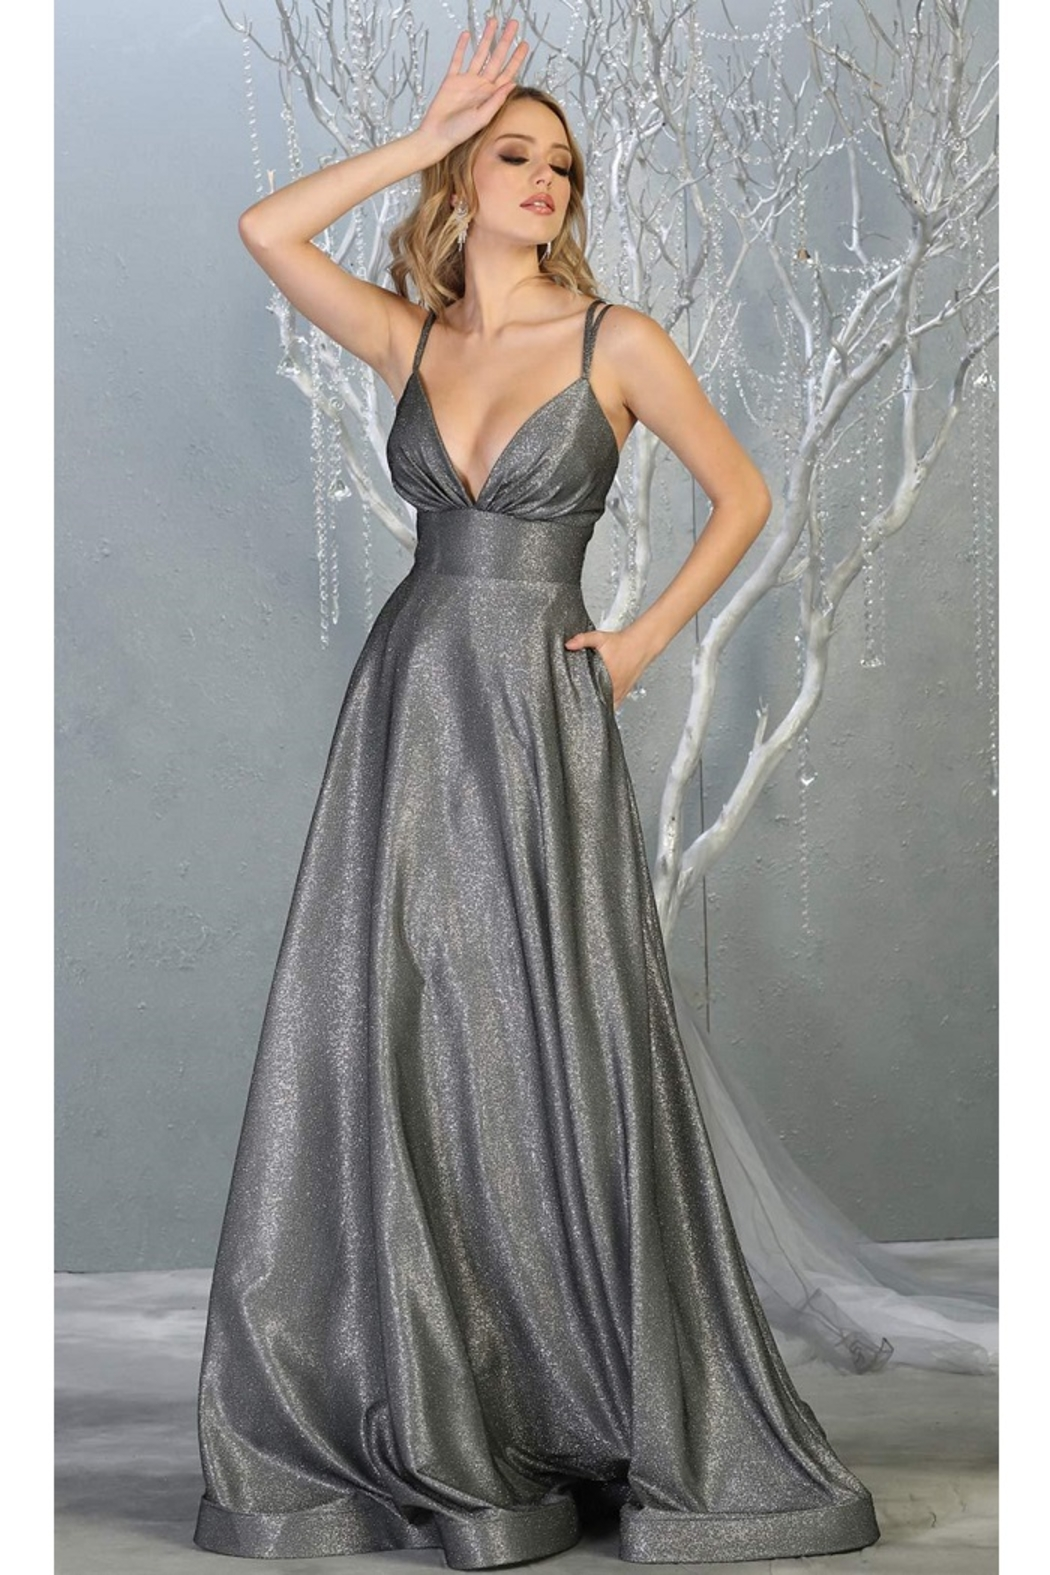 May Queen  Charcoal Metallic Ruched A-Line Formal Long Dress - Main Image